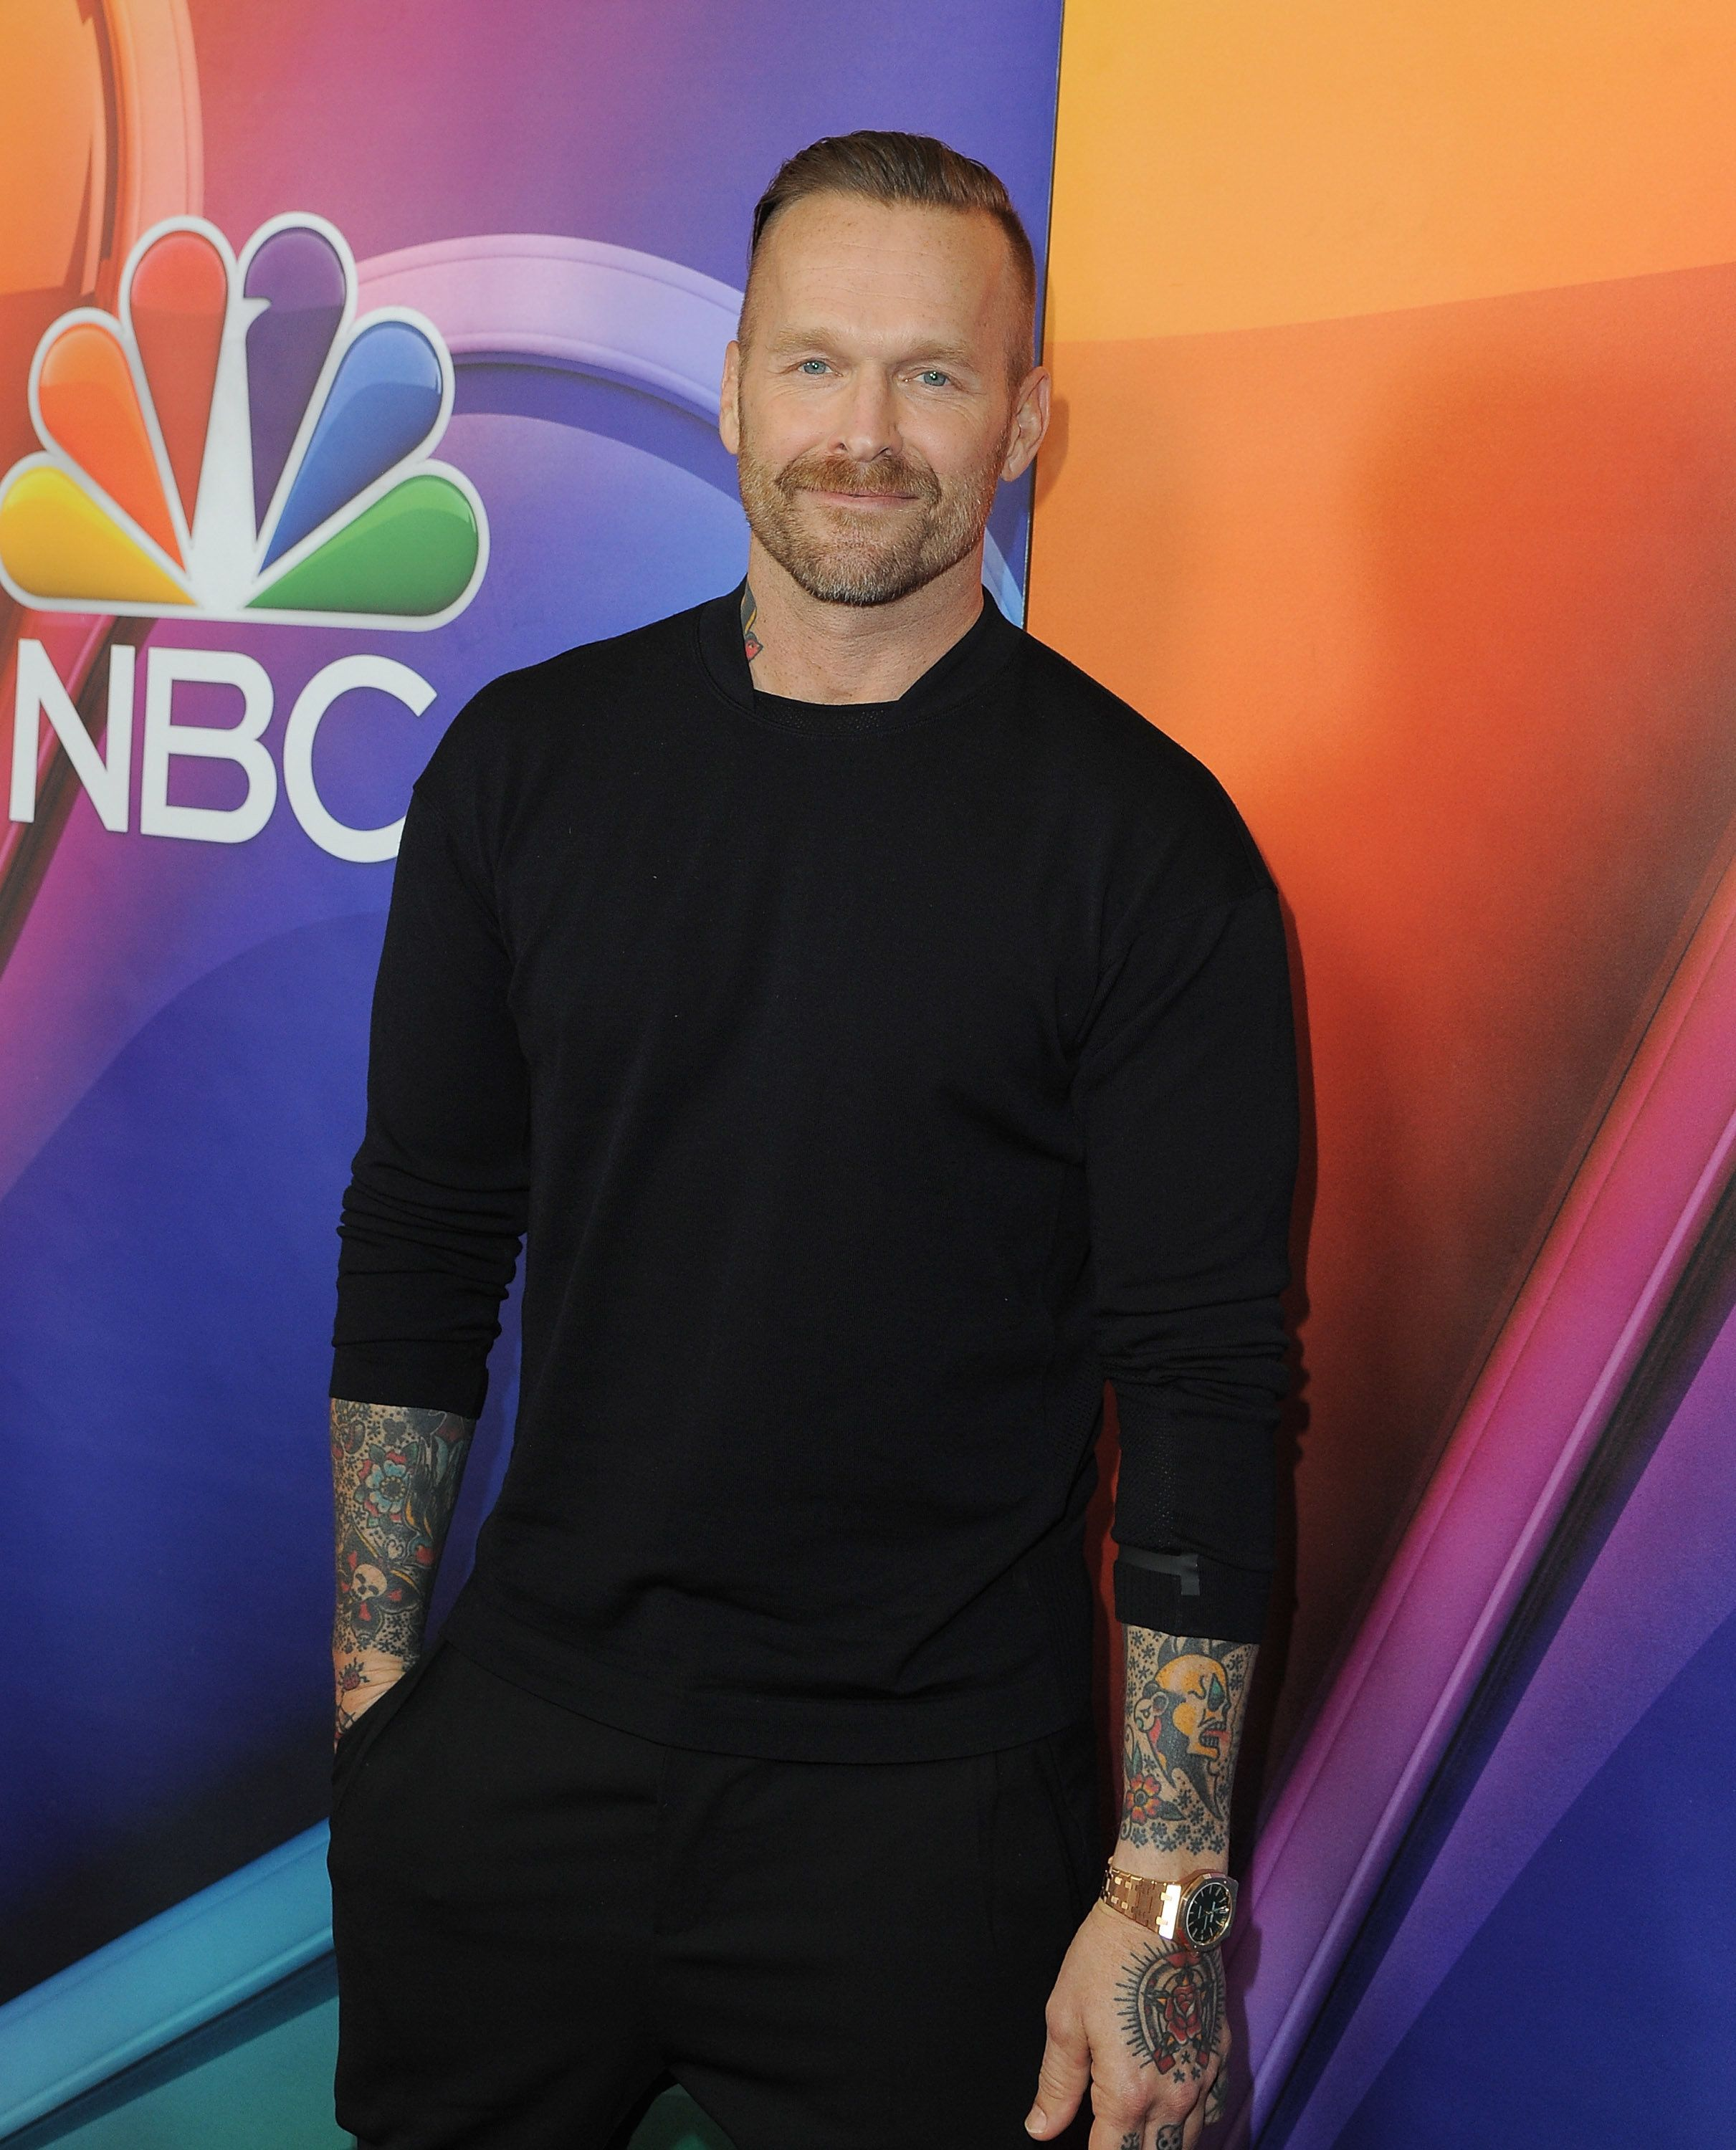 PASADENA, CA - JANUARY 13:  Bob Harper arrives at the 2016 Winter TCA Tour - NBCUniversal Press Tour  at Langham Hotel on January 13, 2016 in Pasadena, California.  (Photo by Angela Weiss/Getty Images)